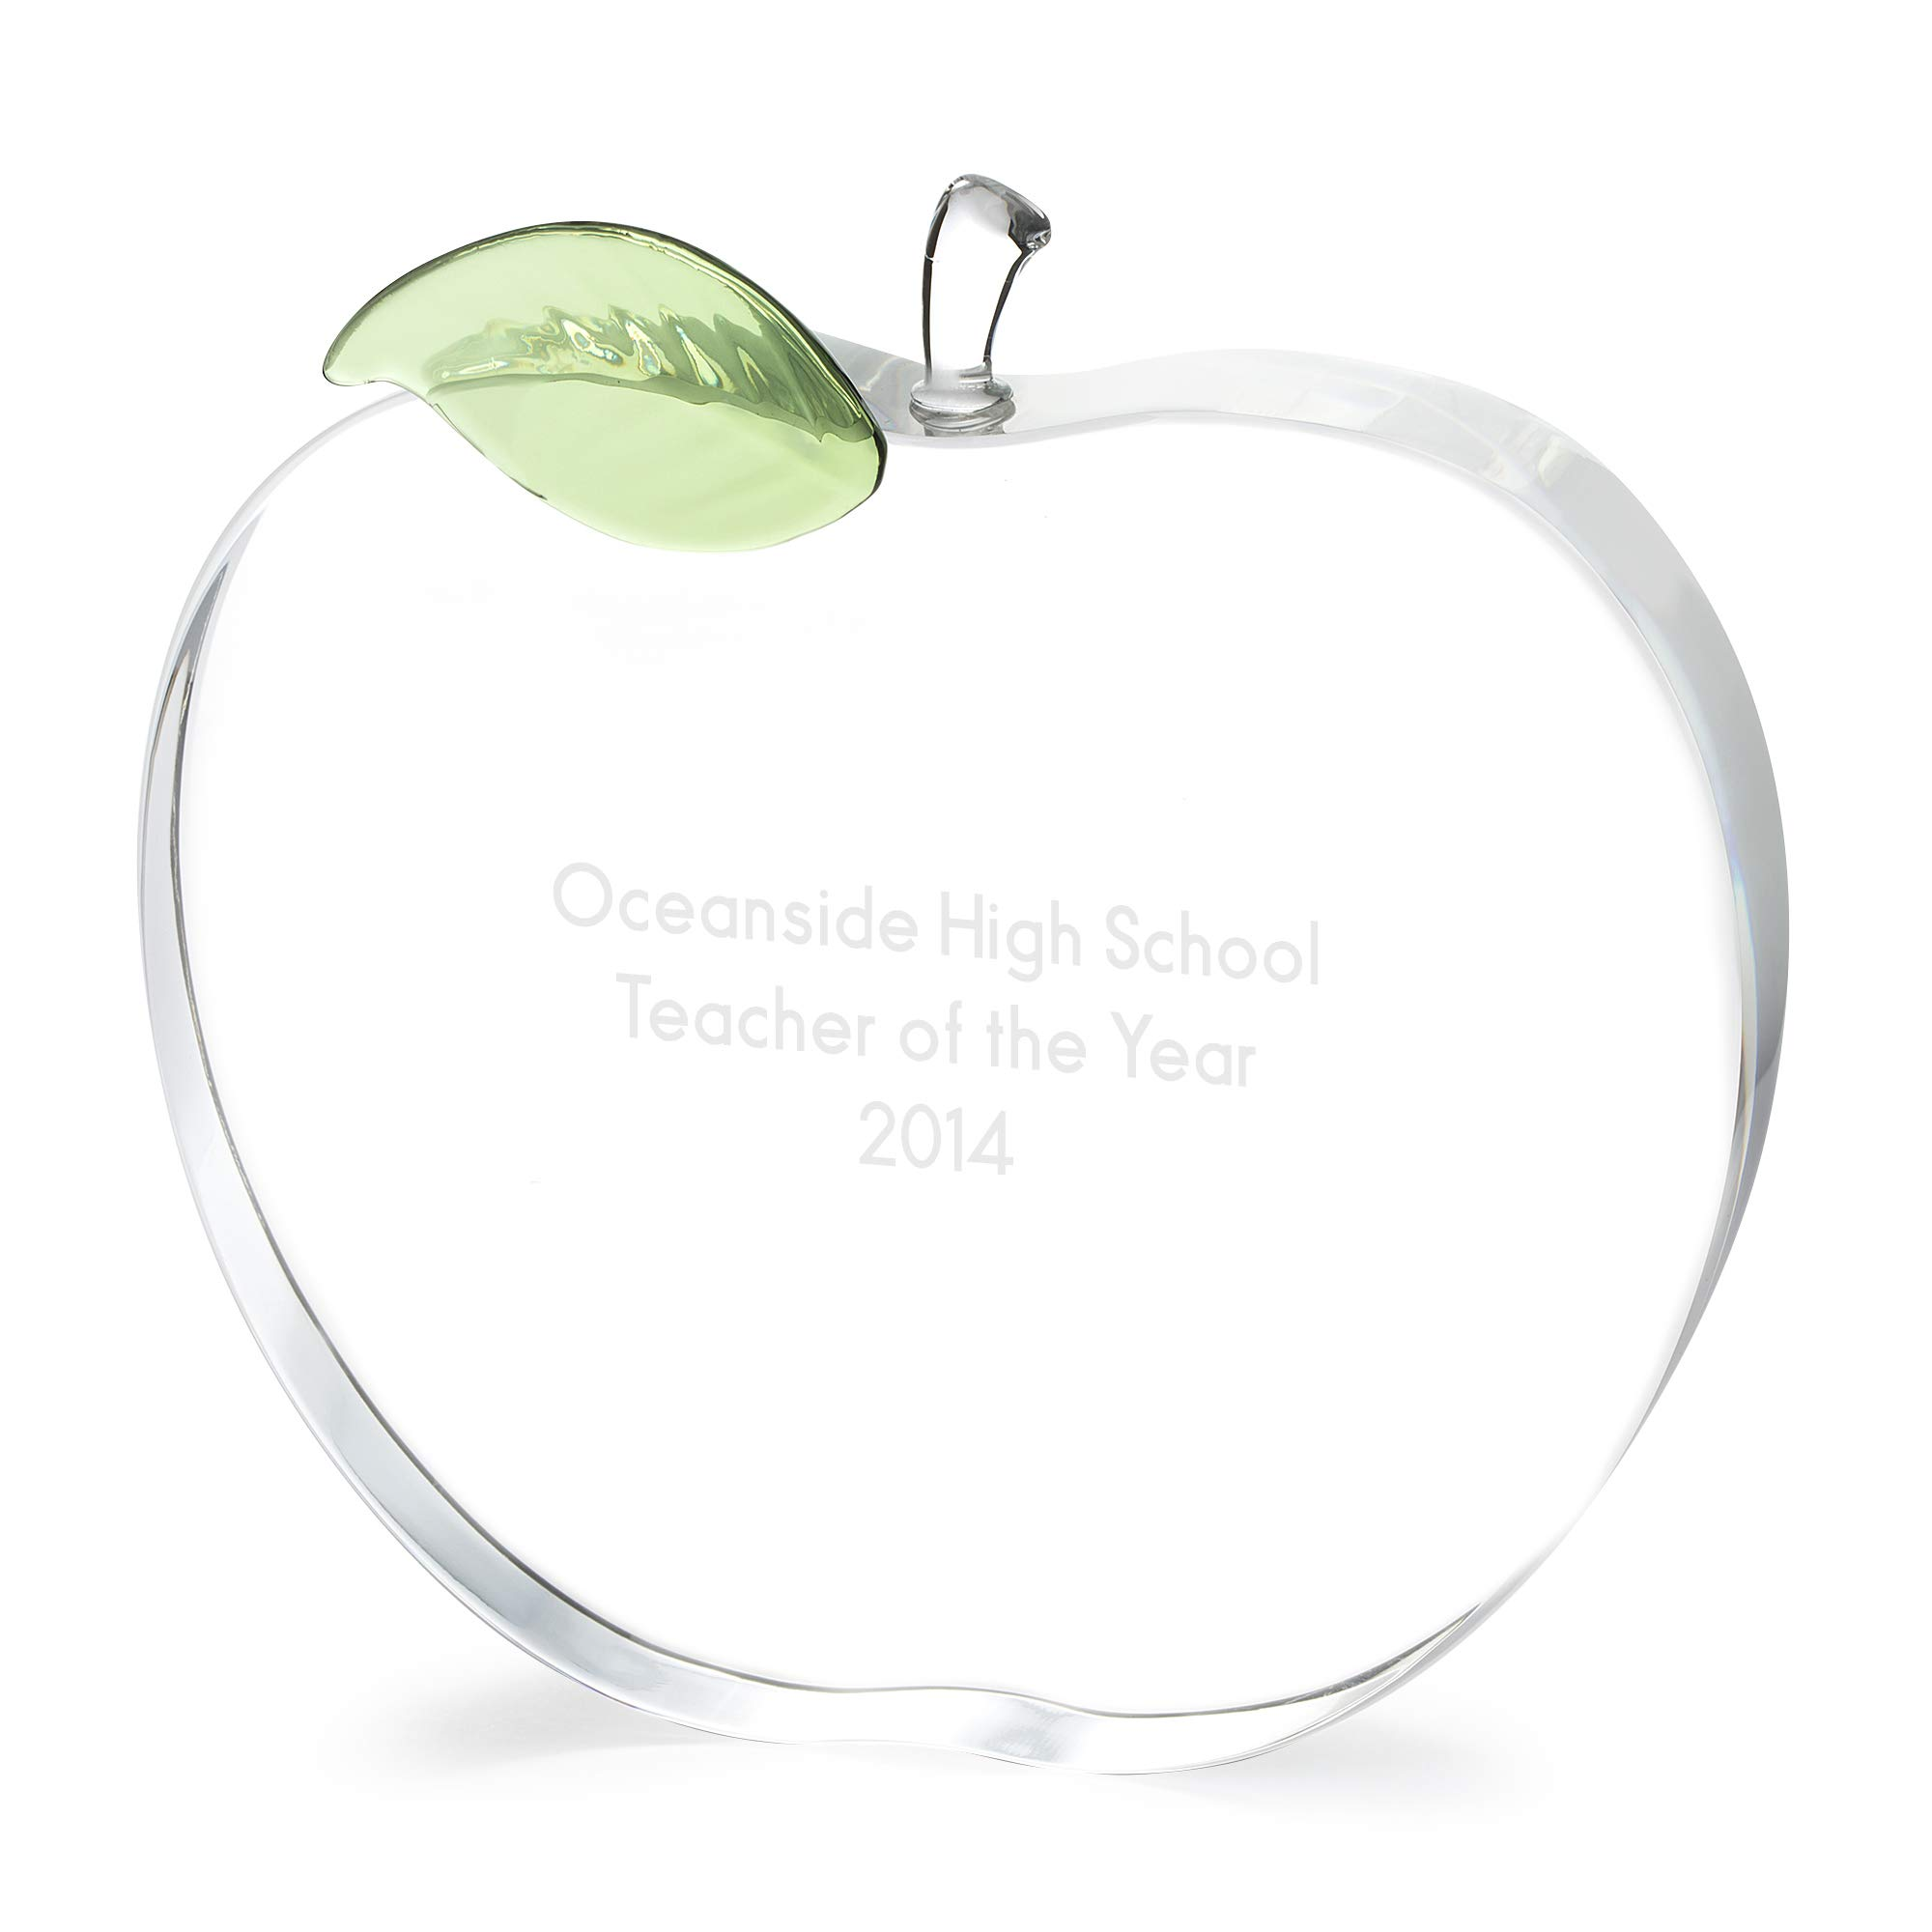 Things Remembered Personalized Crystal Apple Award with Engraving Included